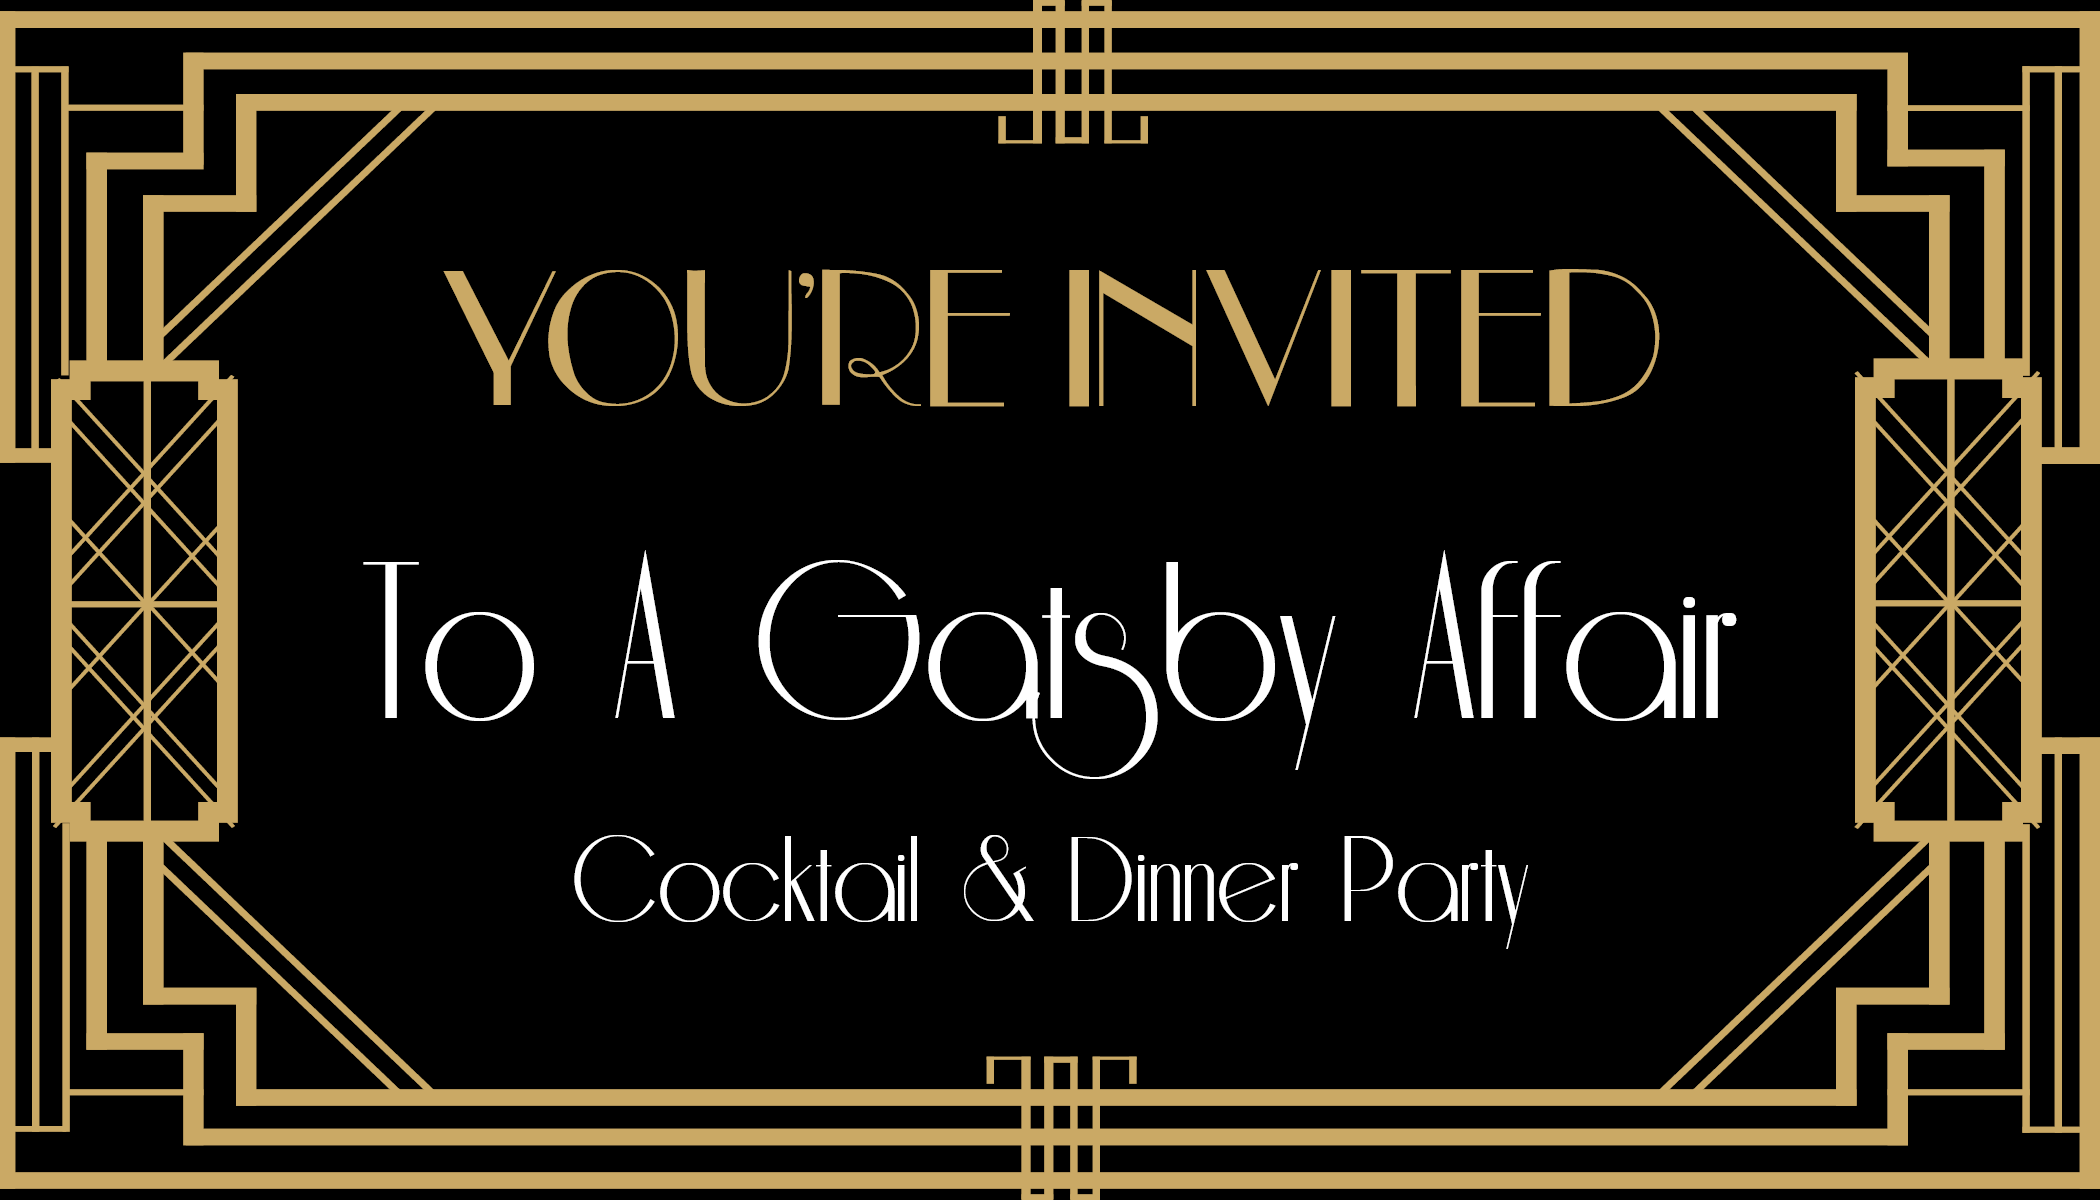 Gatsby_Affair_Invite.png